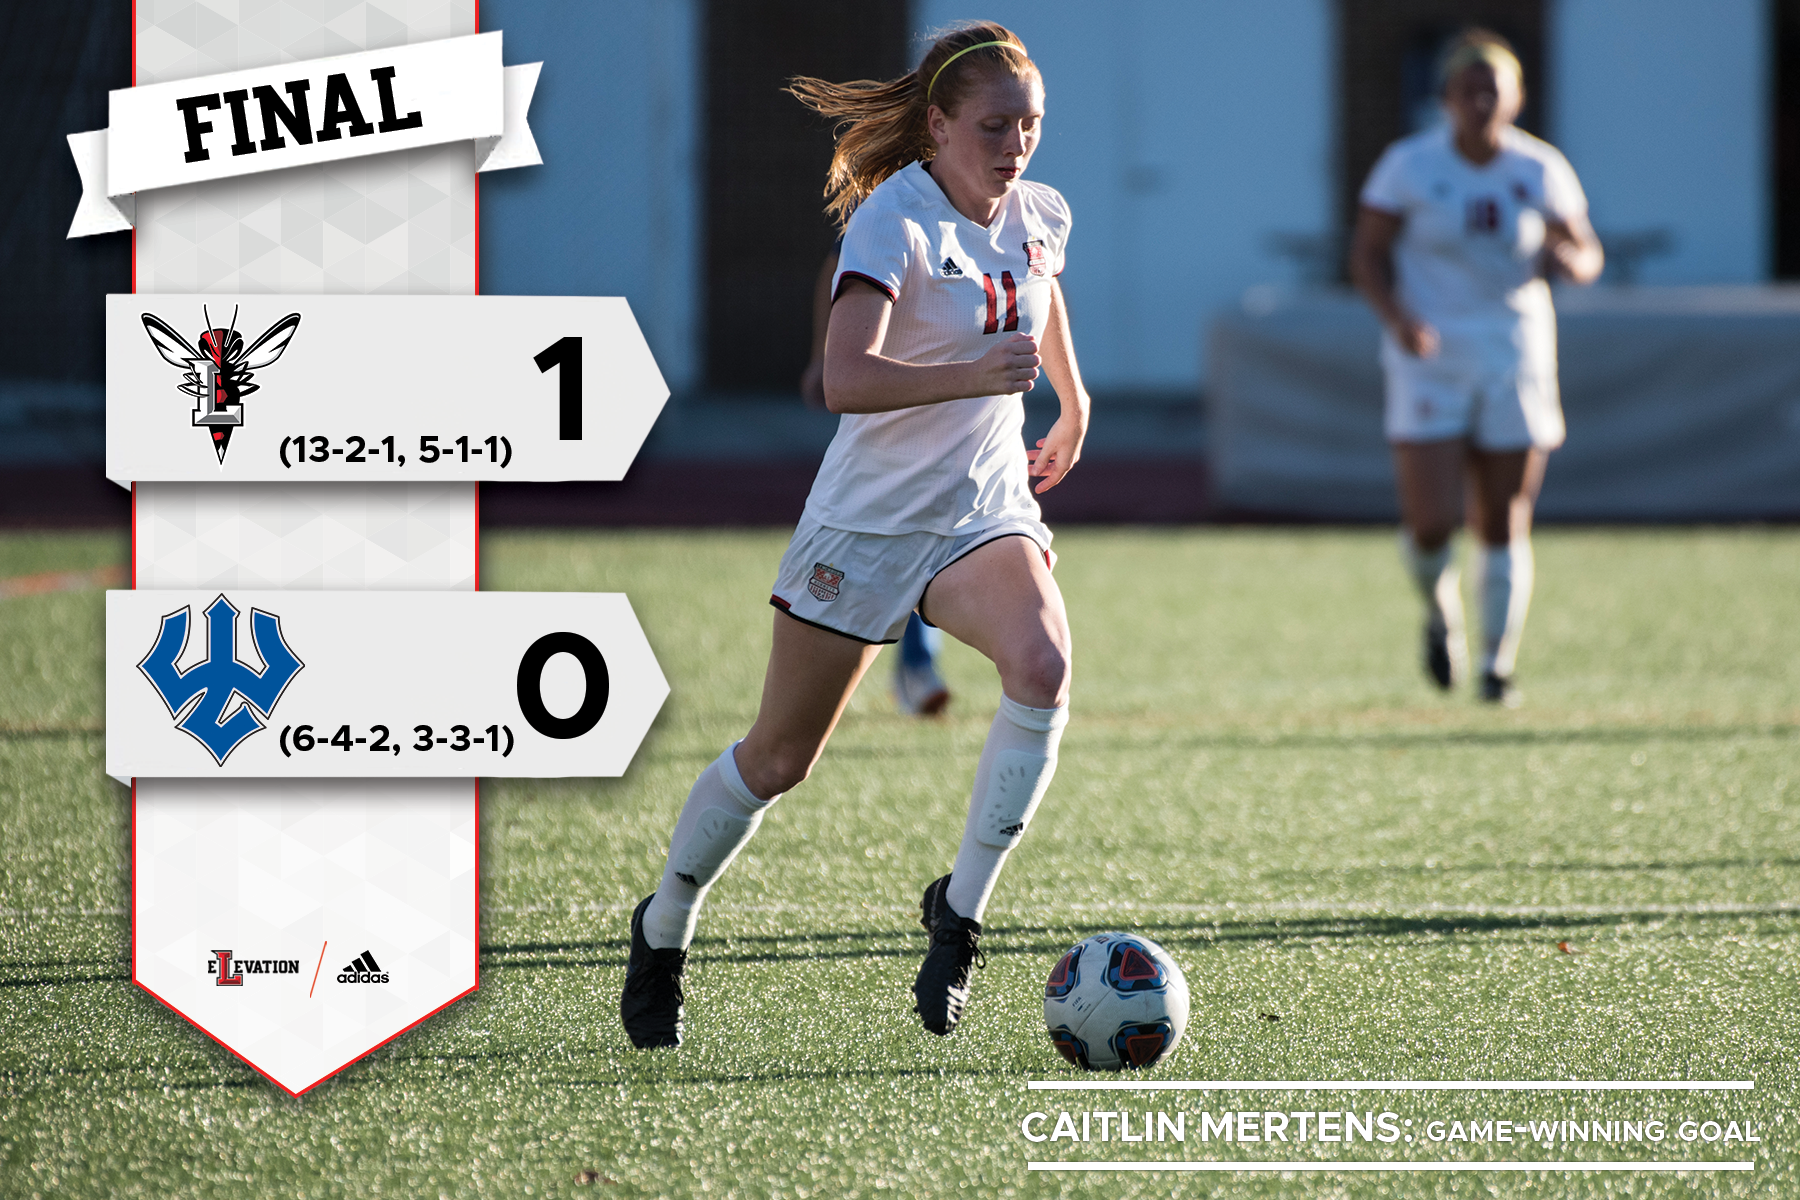 Caitlin Mertens dribbling the soccer ball. Graphic showing 1-0 final score.